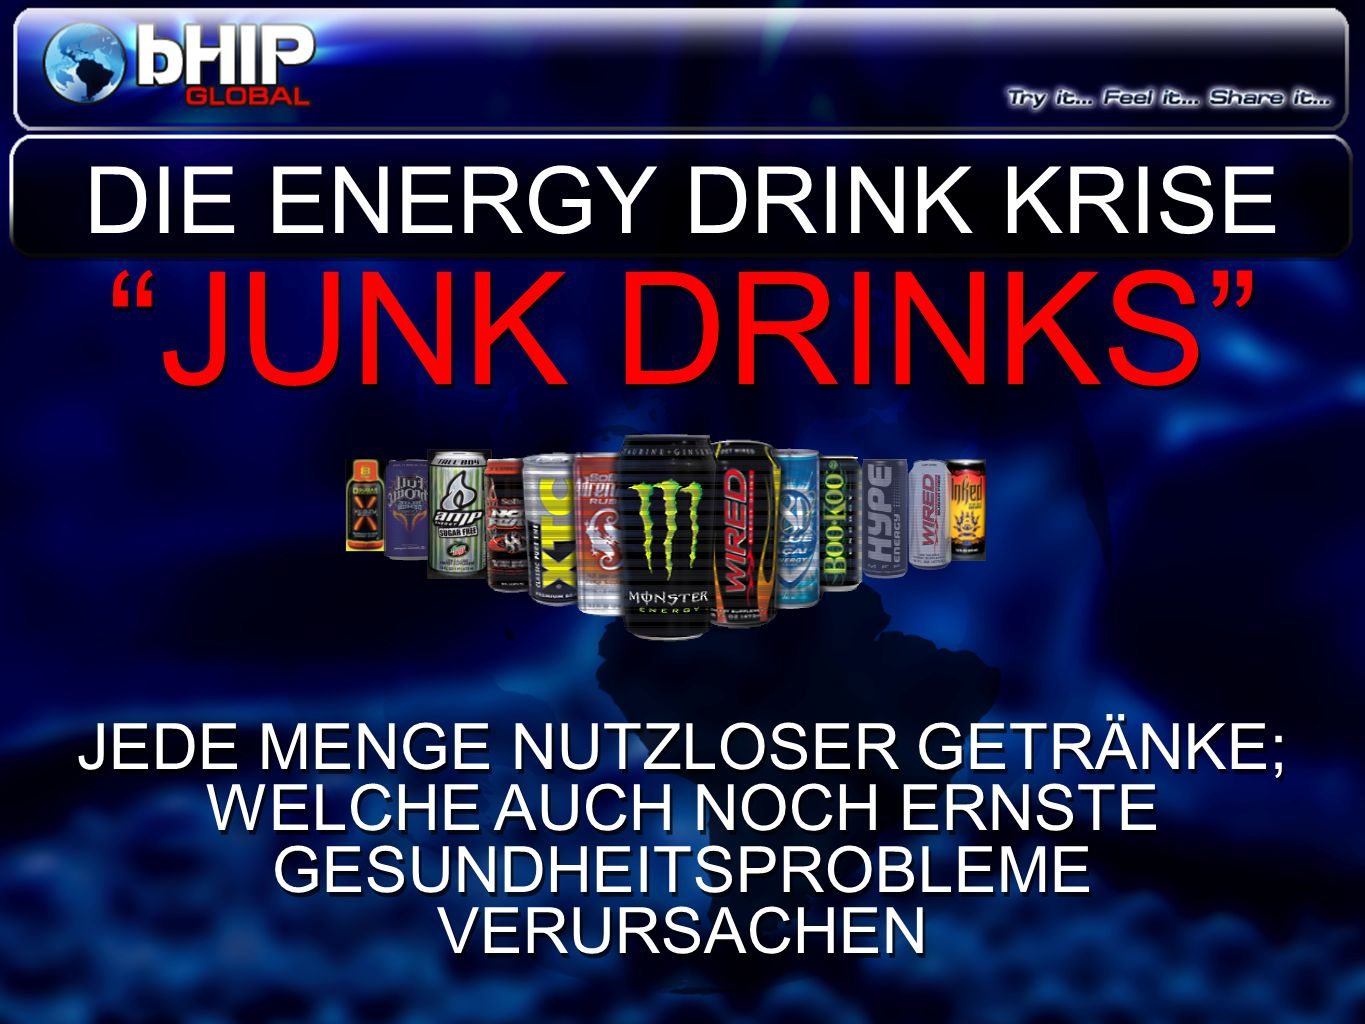 JUNK DRINKS DIE ENERGY DRINK KRISE